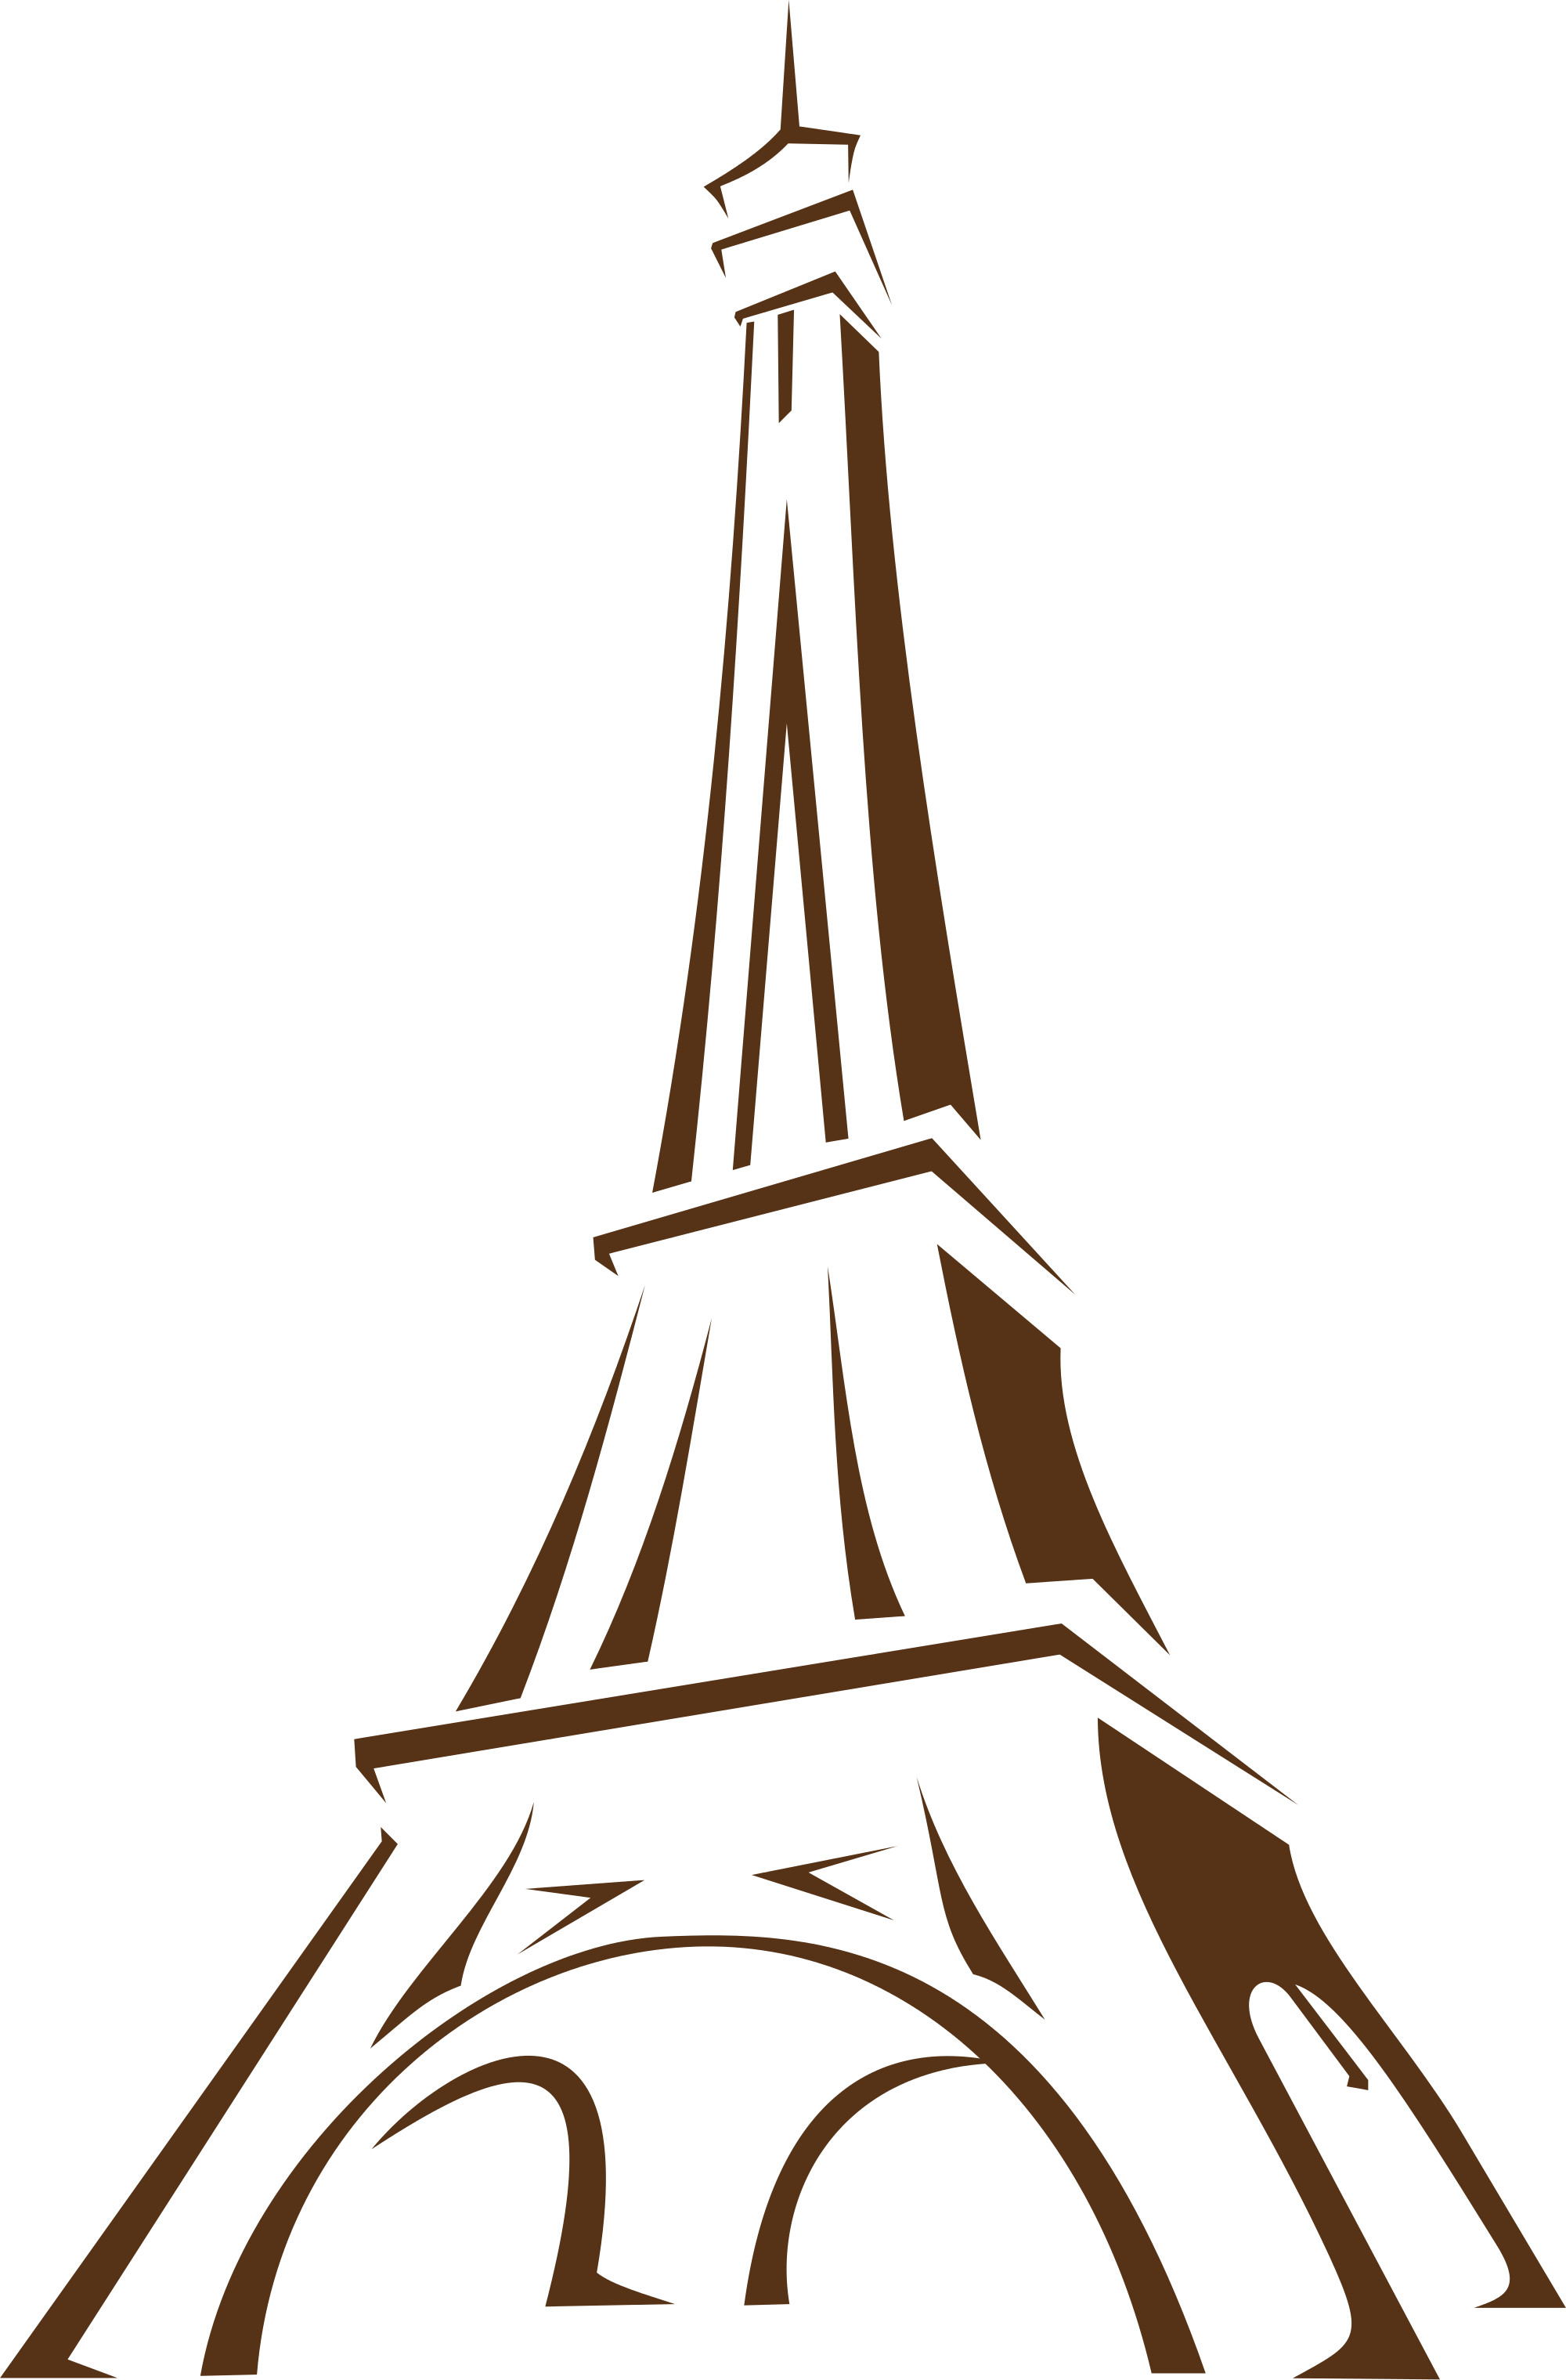 Download Eiffel Tower Png Hd Easy Sket 2434313 Png Images Pngio